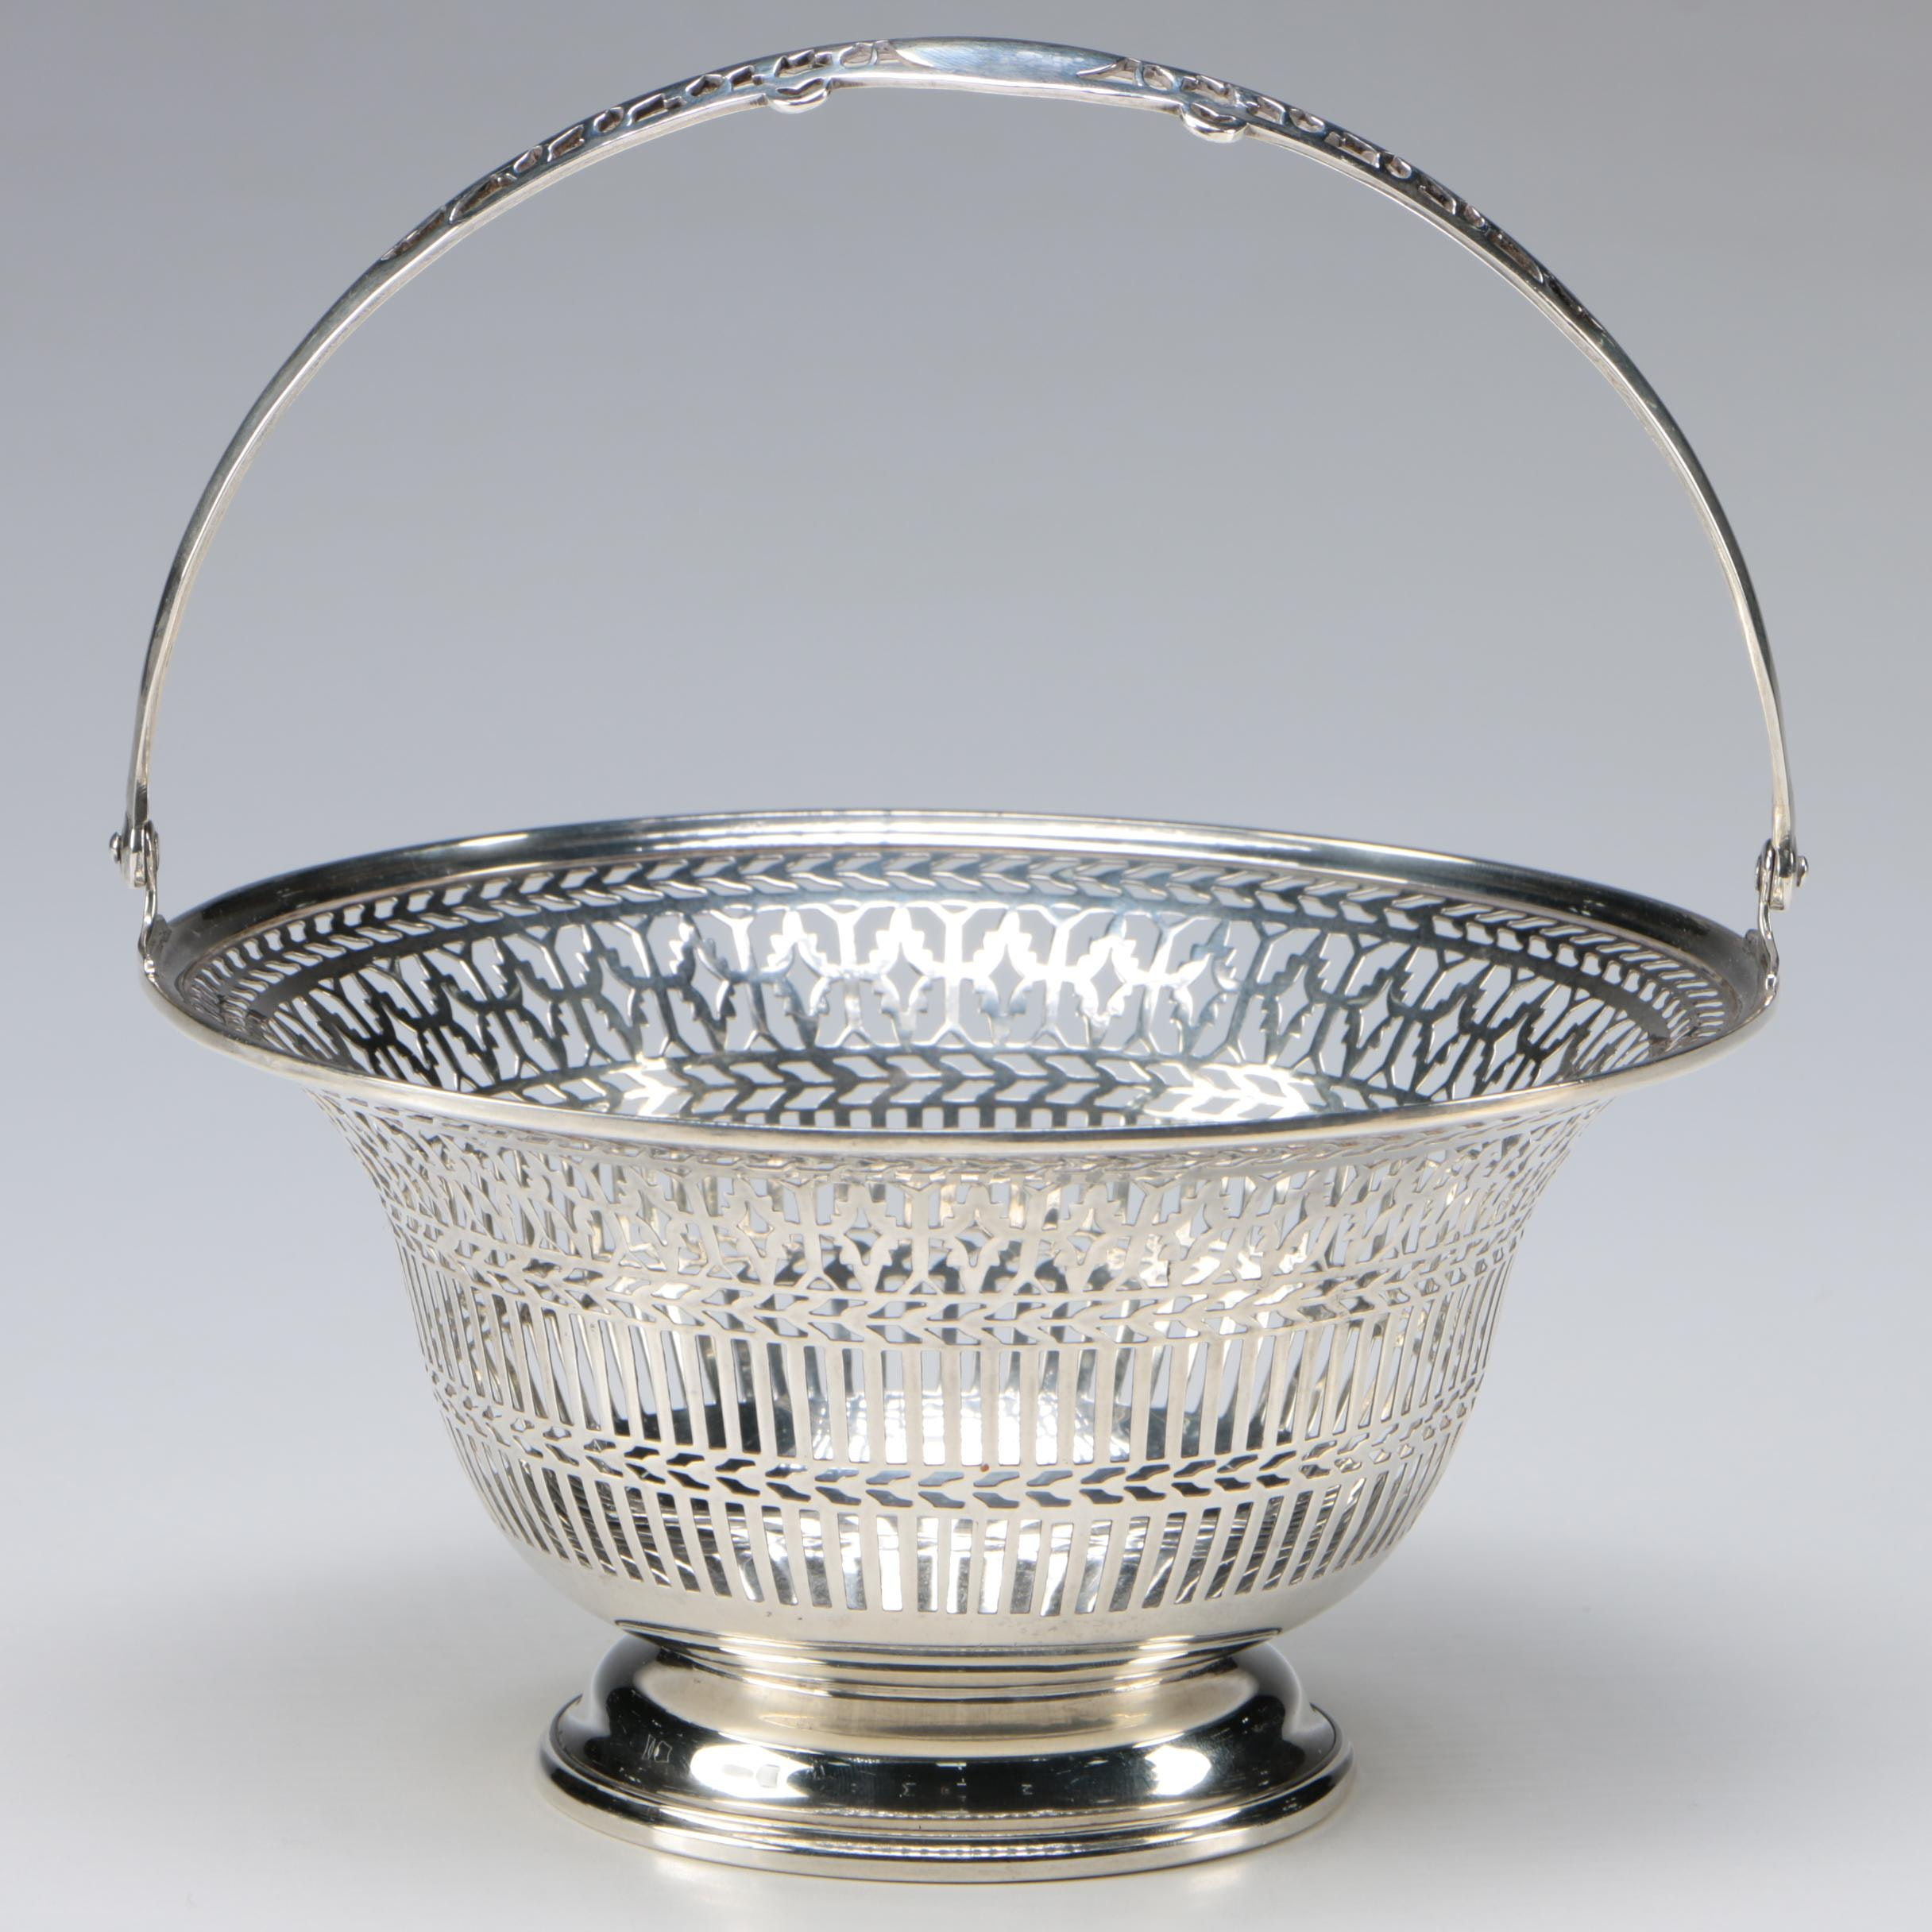 Watson Co. Sterling Silver Reticulated Bride's Basket, Early 20th Century